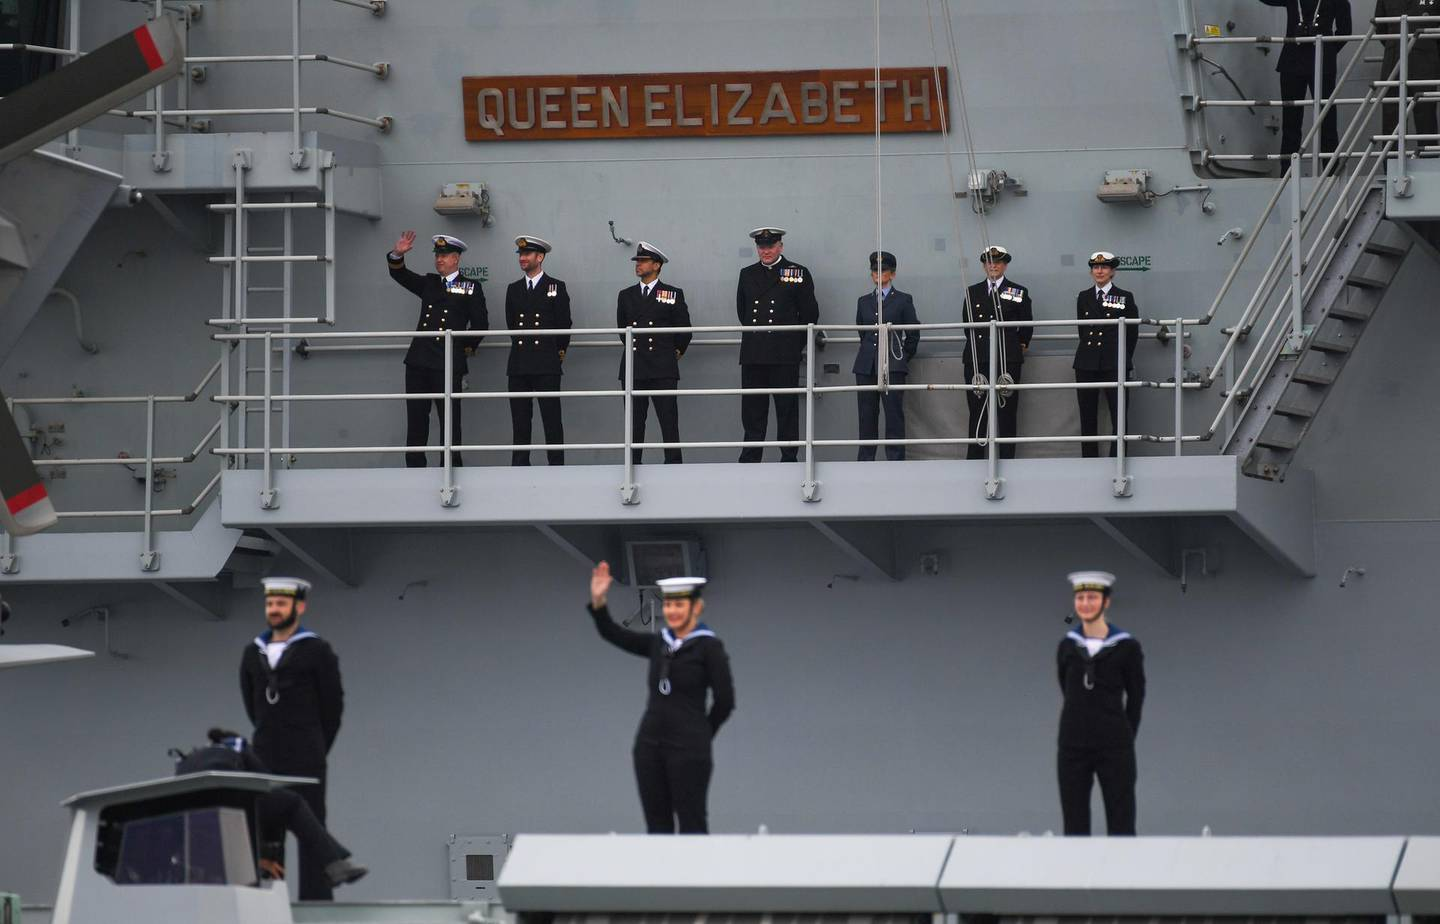 PORTSMOUTH, ENGLAND - MAY 01: HMS Queen Elizabeth leaves Portsmouth on May 01, 2021 in Portsmouth, United Kingdom. The UK's Carrier Strike Group, led by aircraft carrier HMS Queen Elizabeth, will visit more than one fifth of the world's nations during the deployment. The task group will visit 40 nations covering 26,000 nautical miles. Joining HMS Queen Elizabeth on her maiden deployment are destroyers HMS Diamond and Defender, frigates HMS Richmond and Kent, an Astute-class submarine in support and Royal Fleet Auxiliary support ships RFA Fort Victoria and RFA Tidespring. (Photo by Finnbarr Webster/Getty Images)